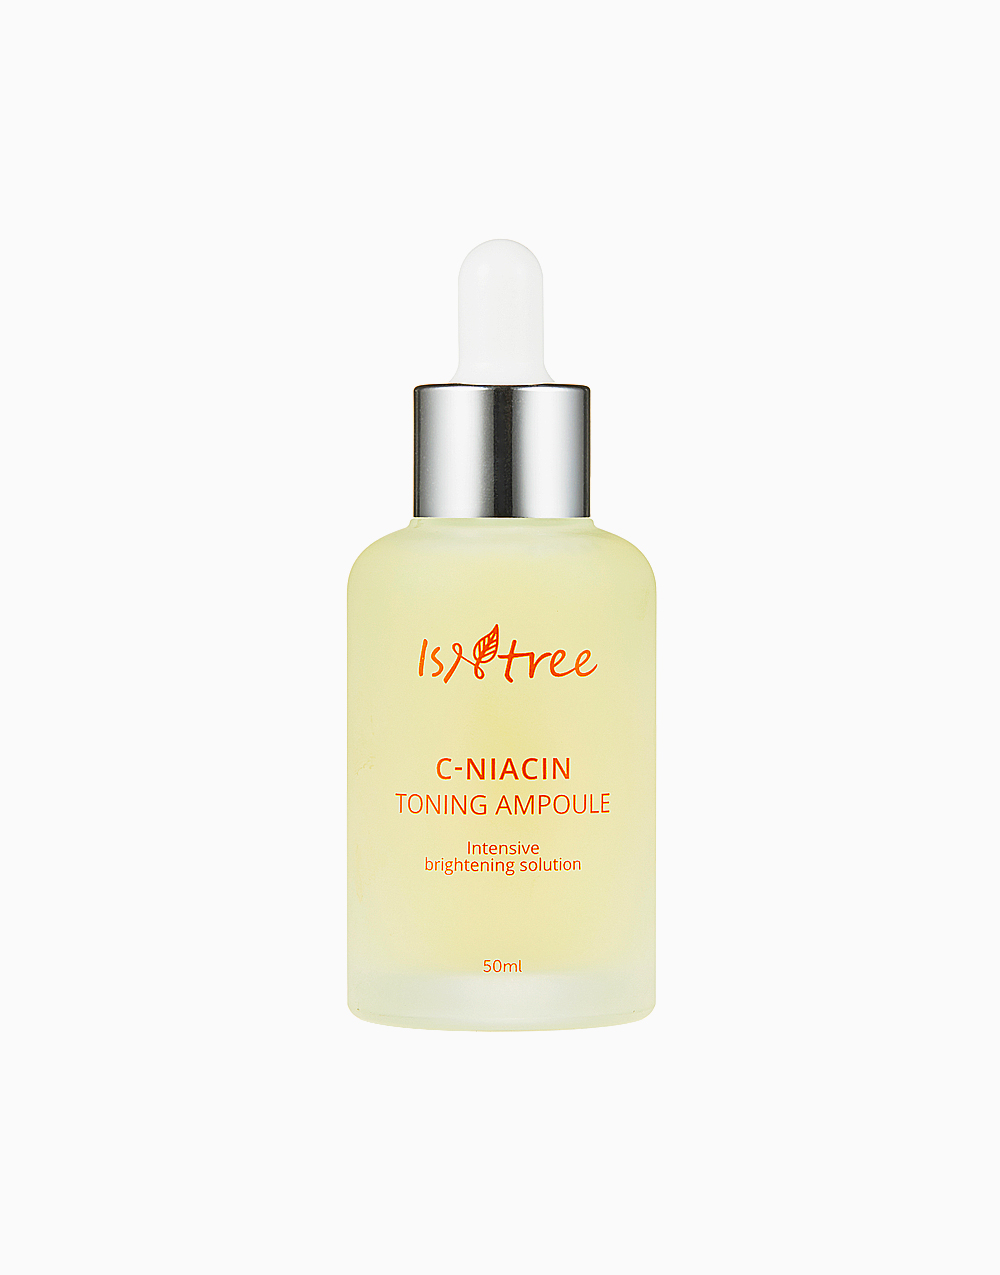 C-Niacin Toning Ampoule by Isntree